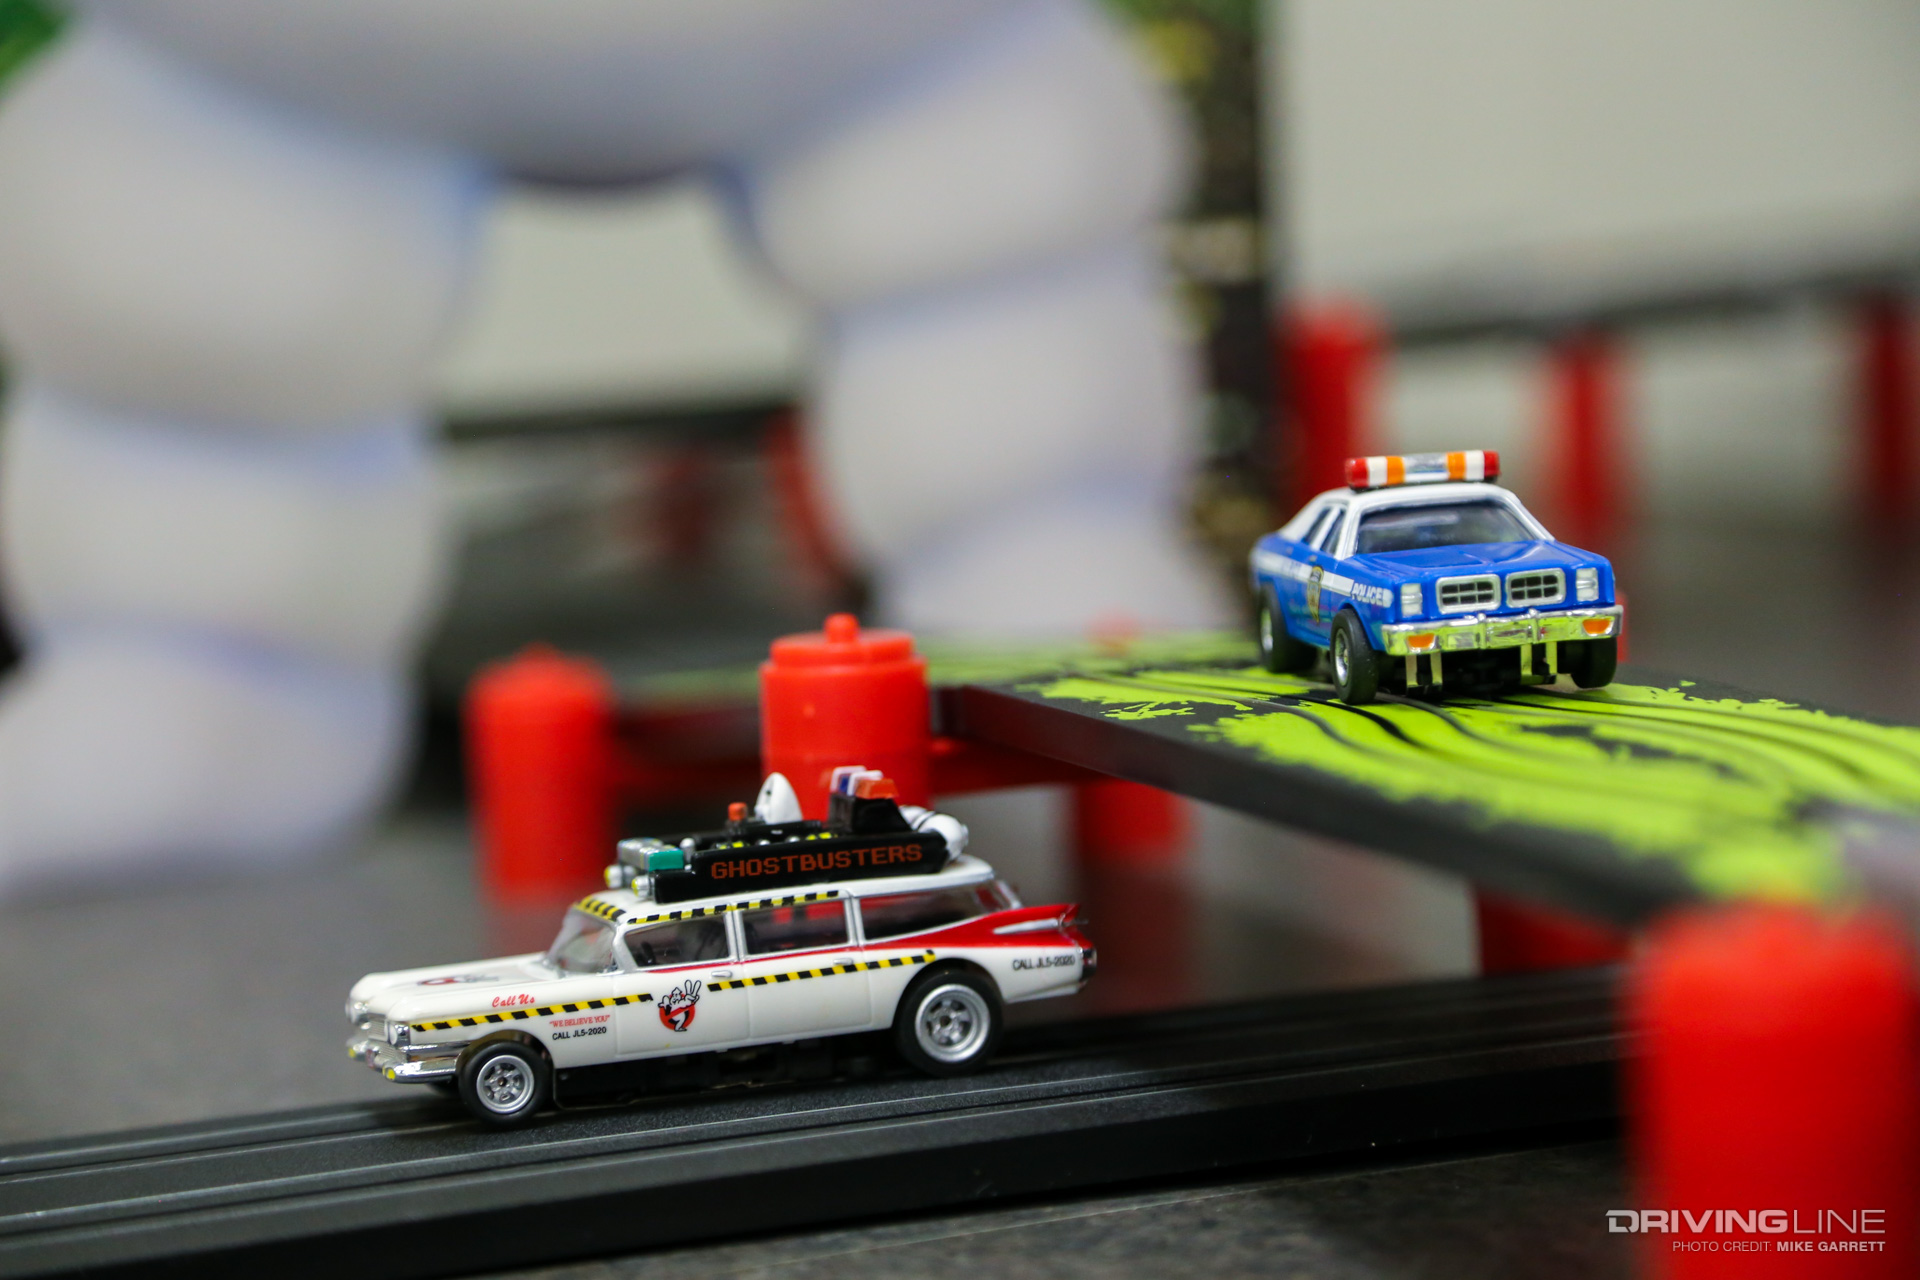 Slot Cars Forever Rediscovering The Fun Of Miniature Racing With Ho Car Track Power Wiring Auto World Drivingline